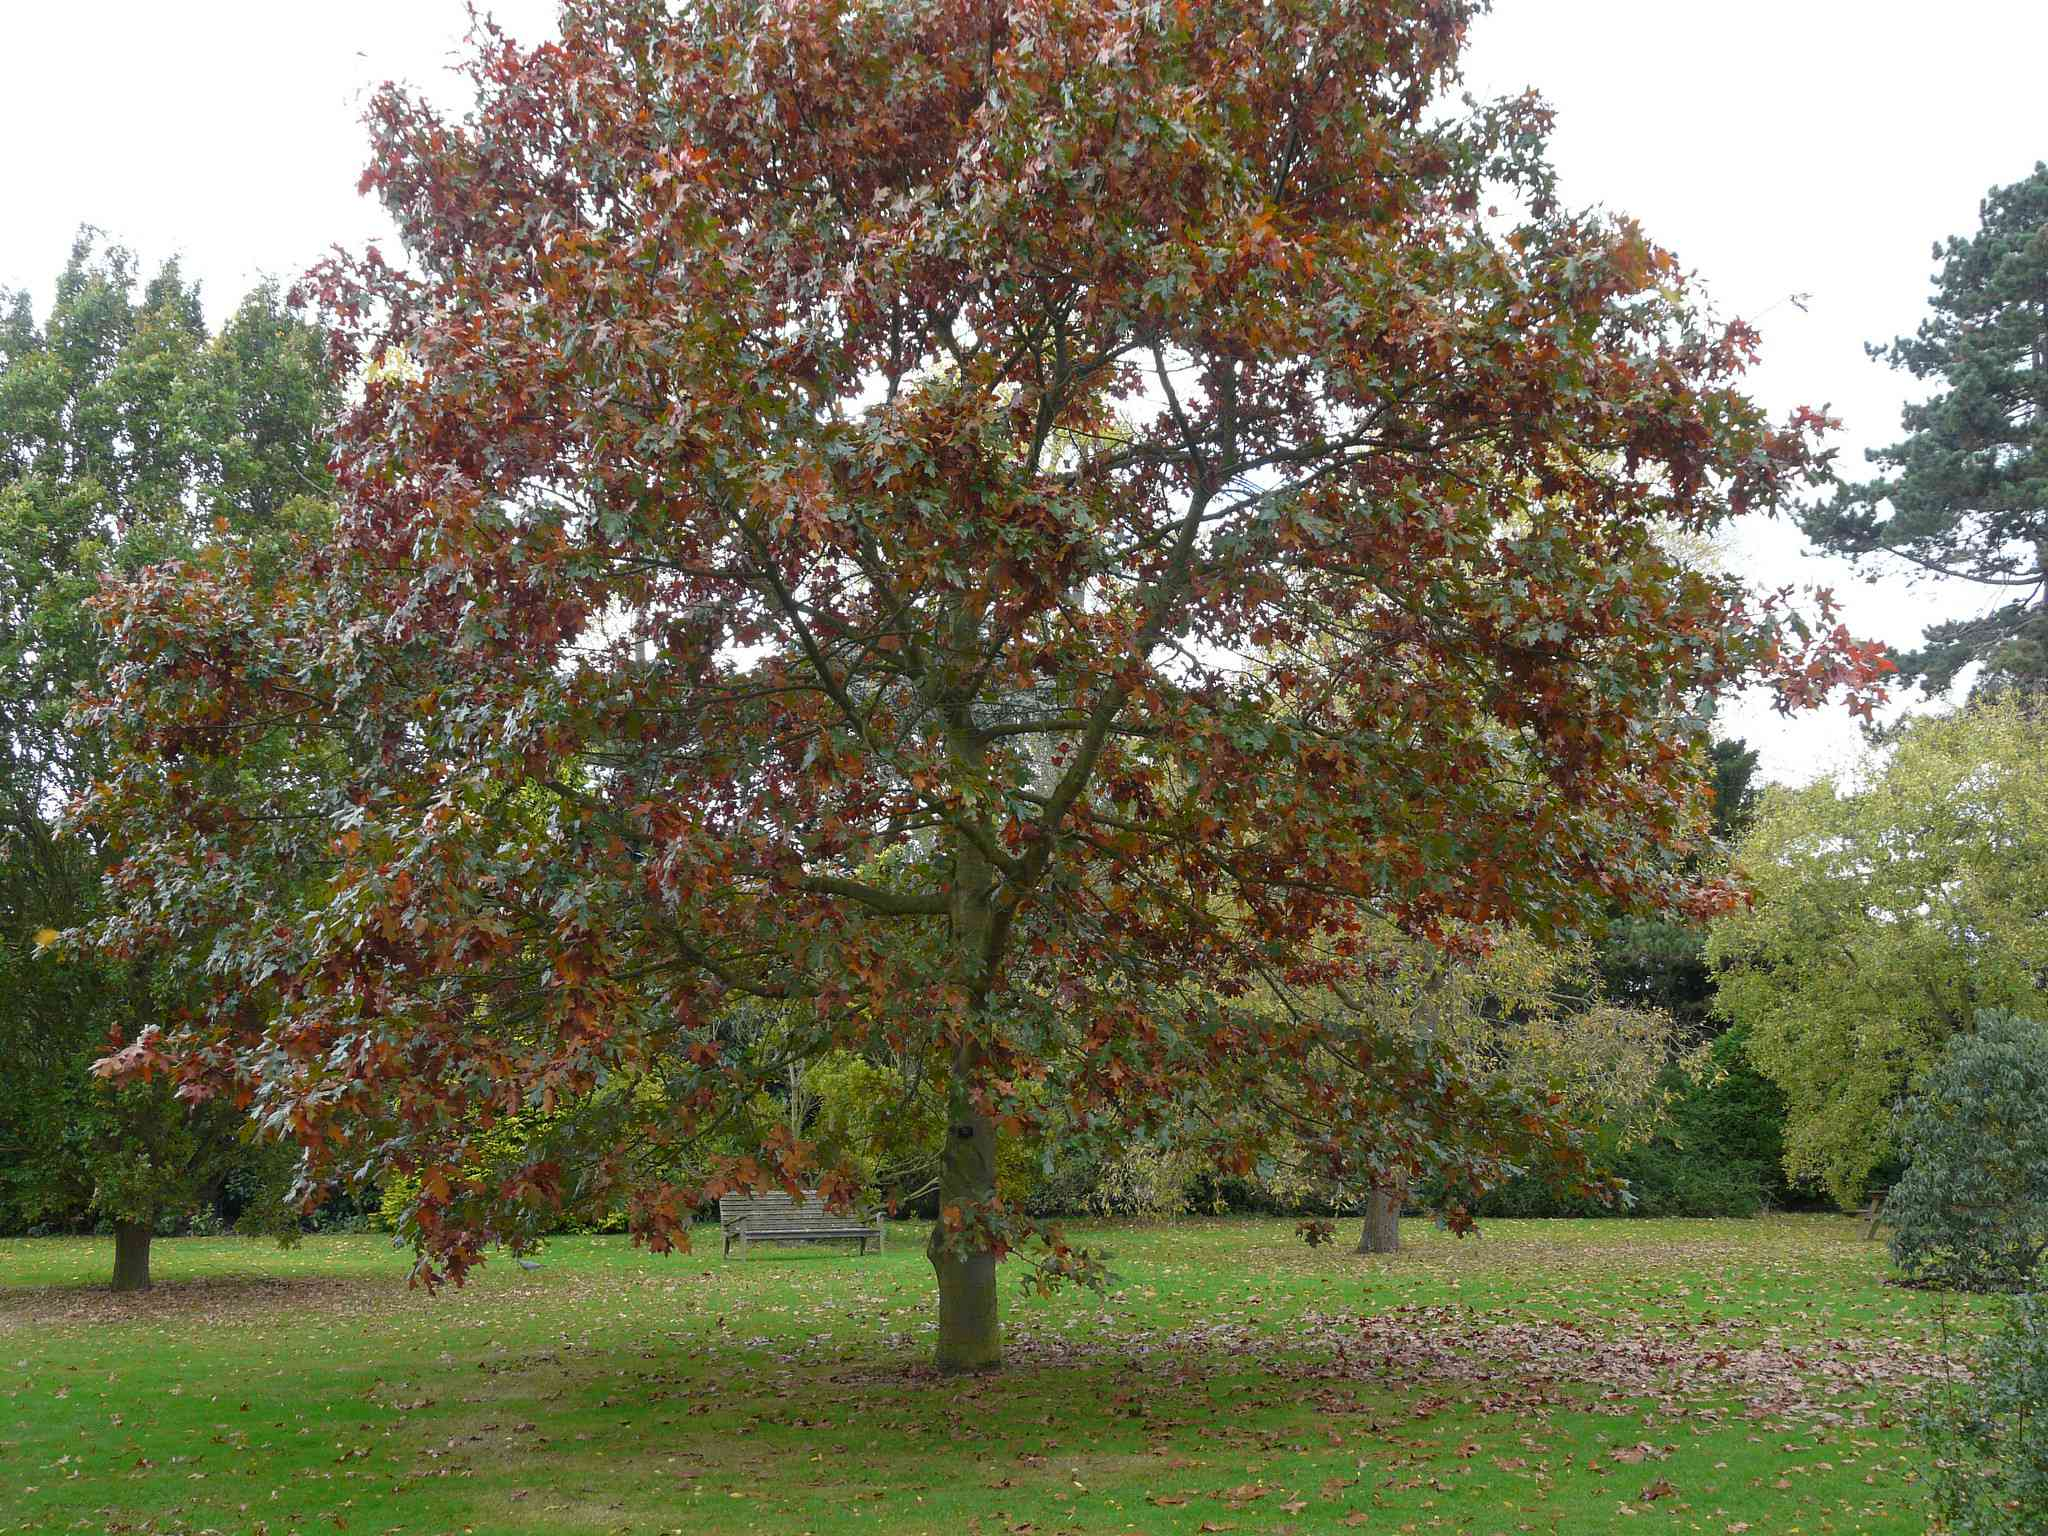 Structure of a Pin Oak tree with leaves turning red and falling off.